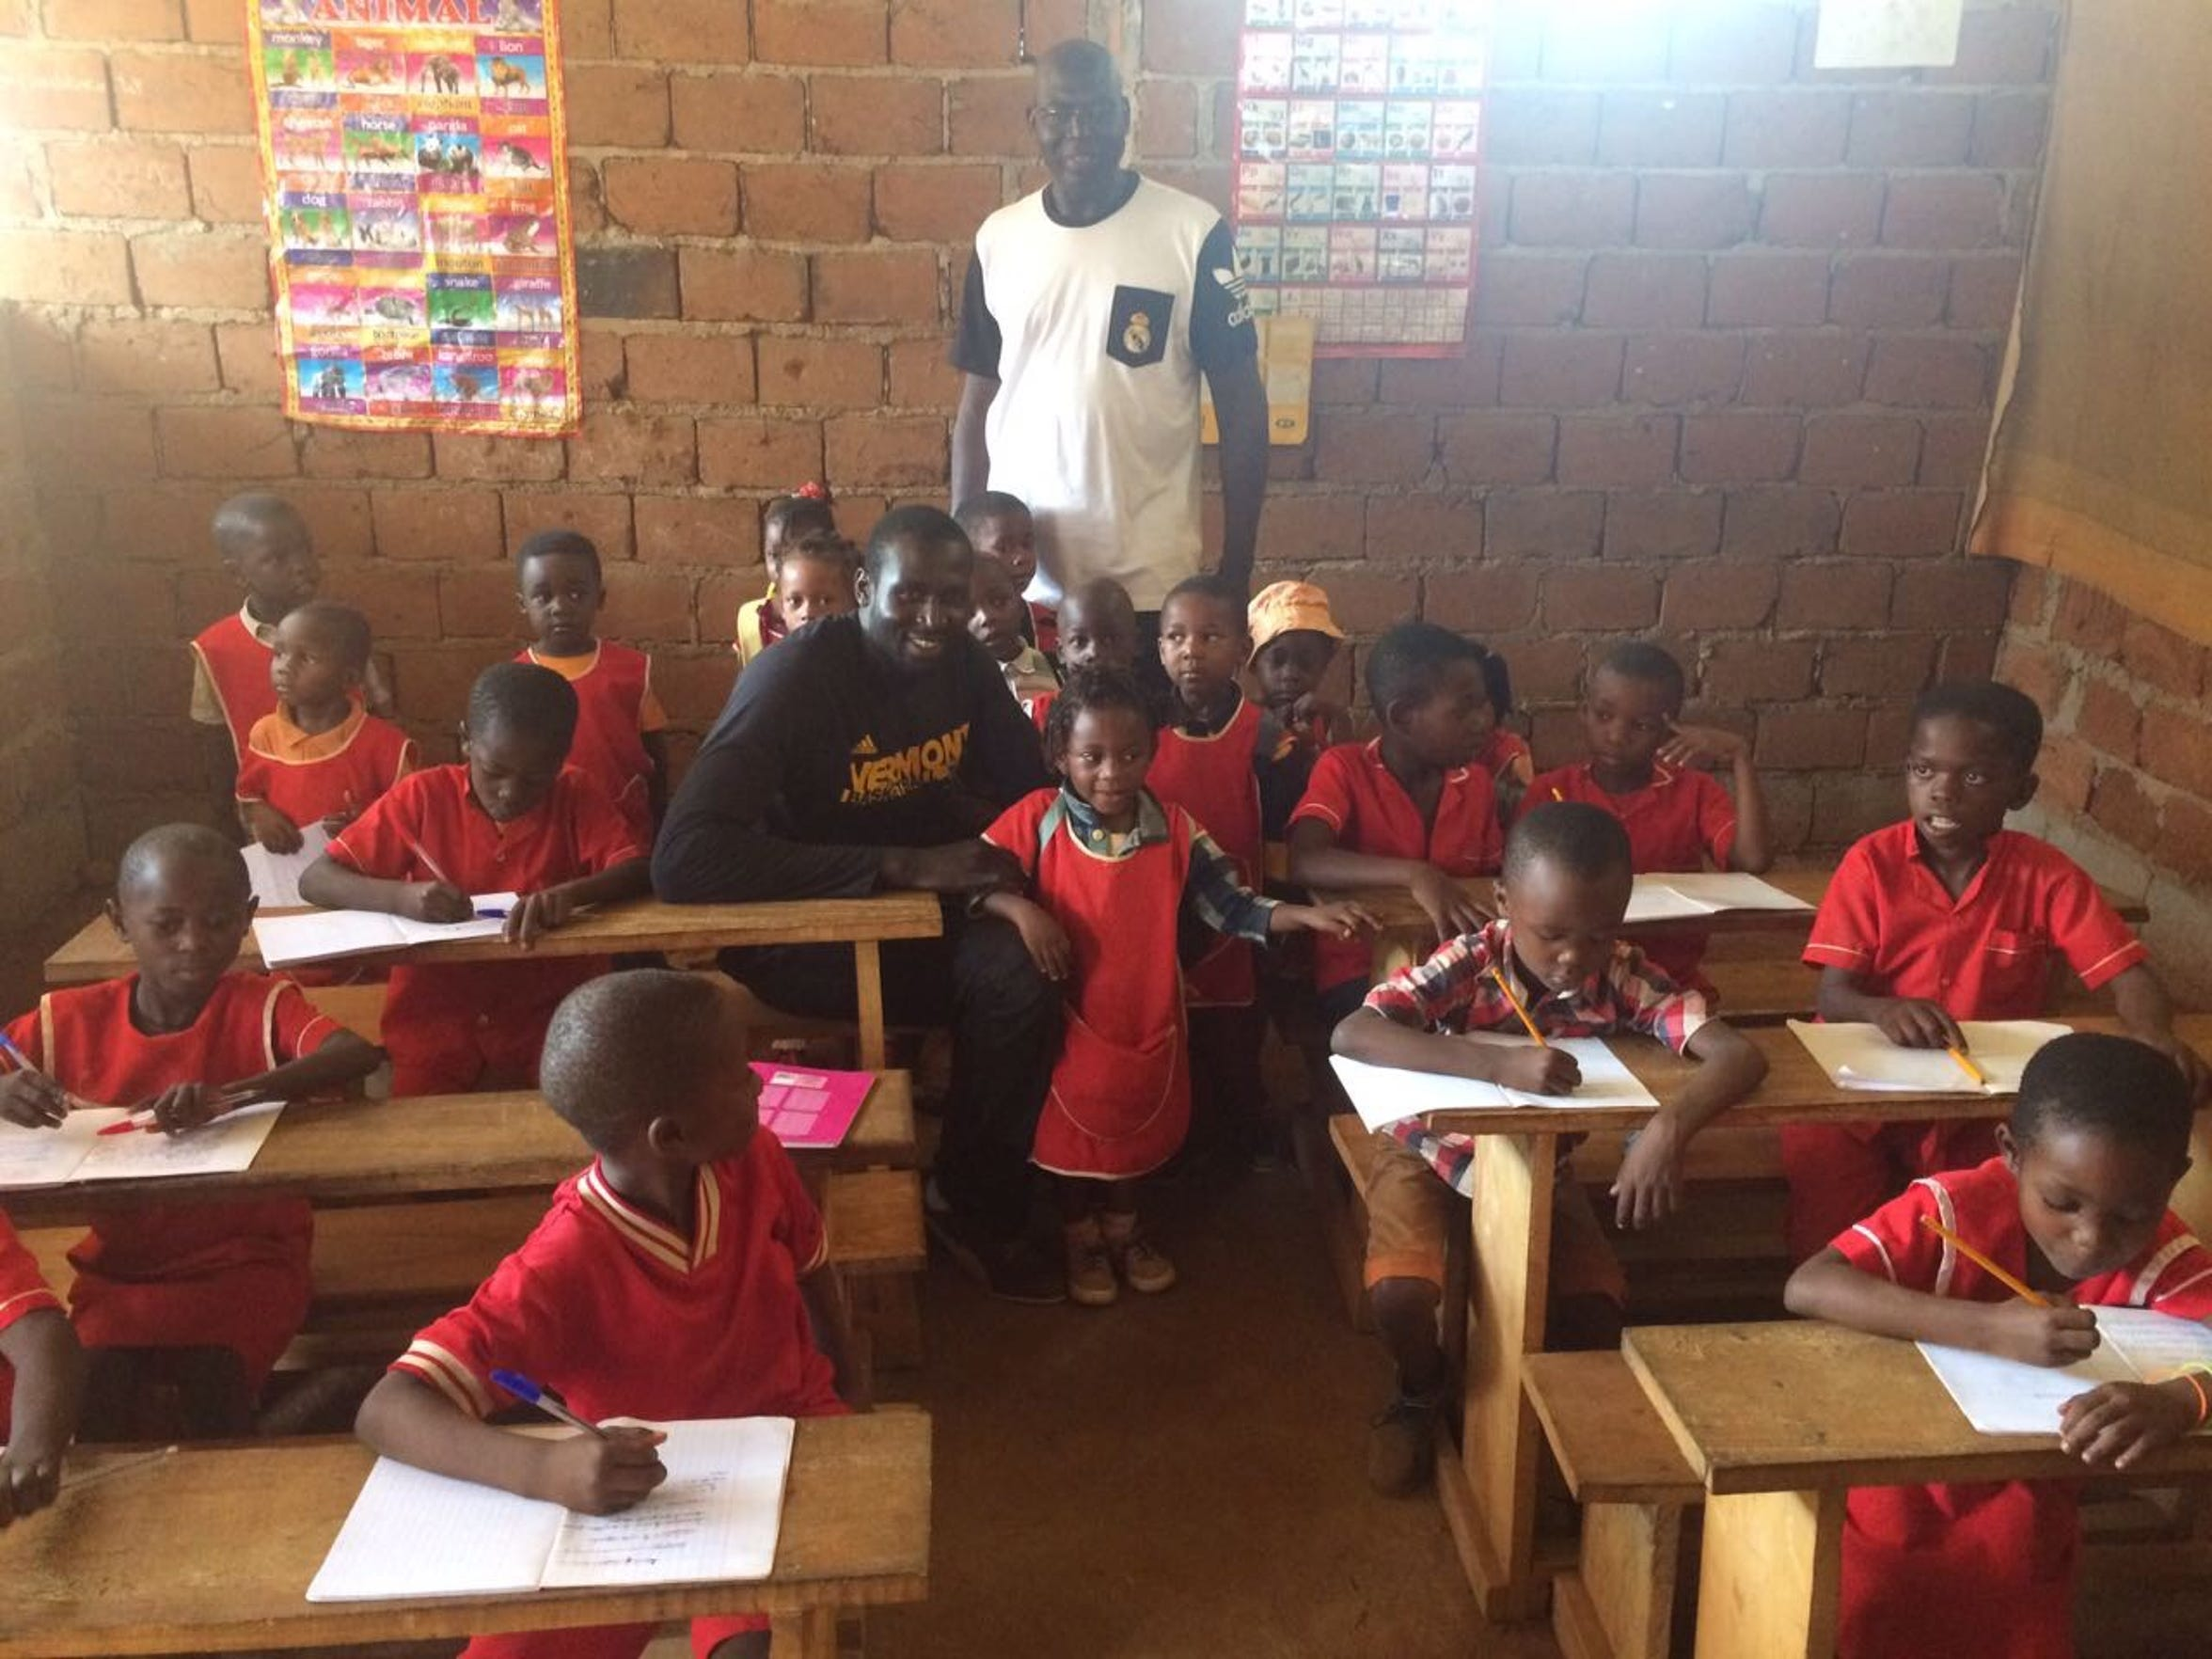 UVM basketball player Samuel Dingba sits with a group of orphans in a village classroom about 15 minutes outside of Dingba's home city of Yaoundé, Cameroon. Dingba returned to Cameroon in 2016 to donate food, clothing and other essentials.